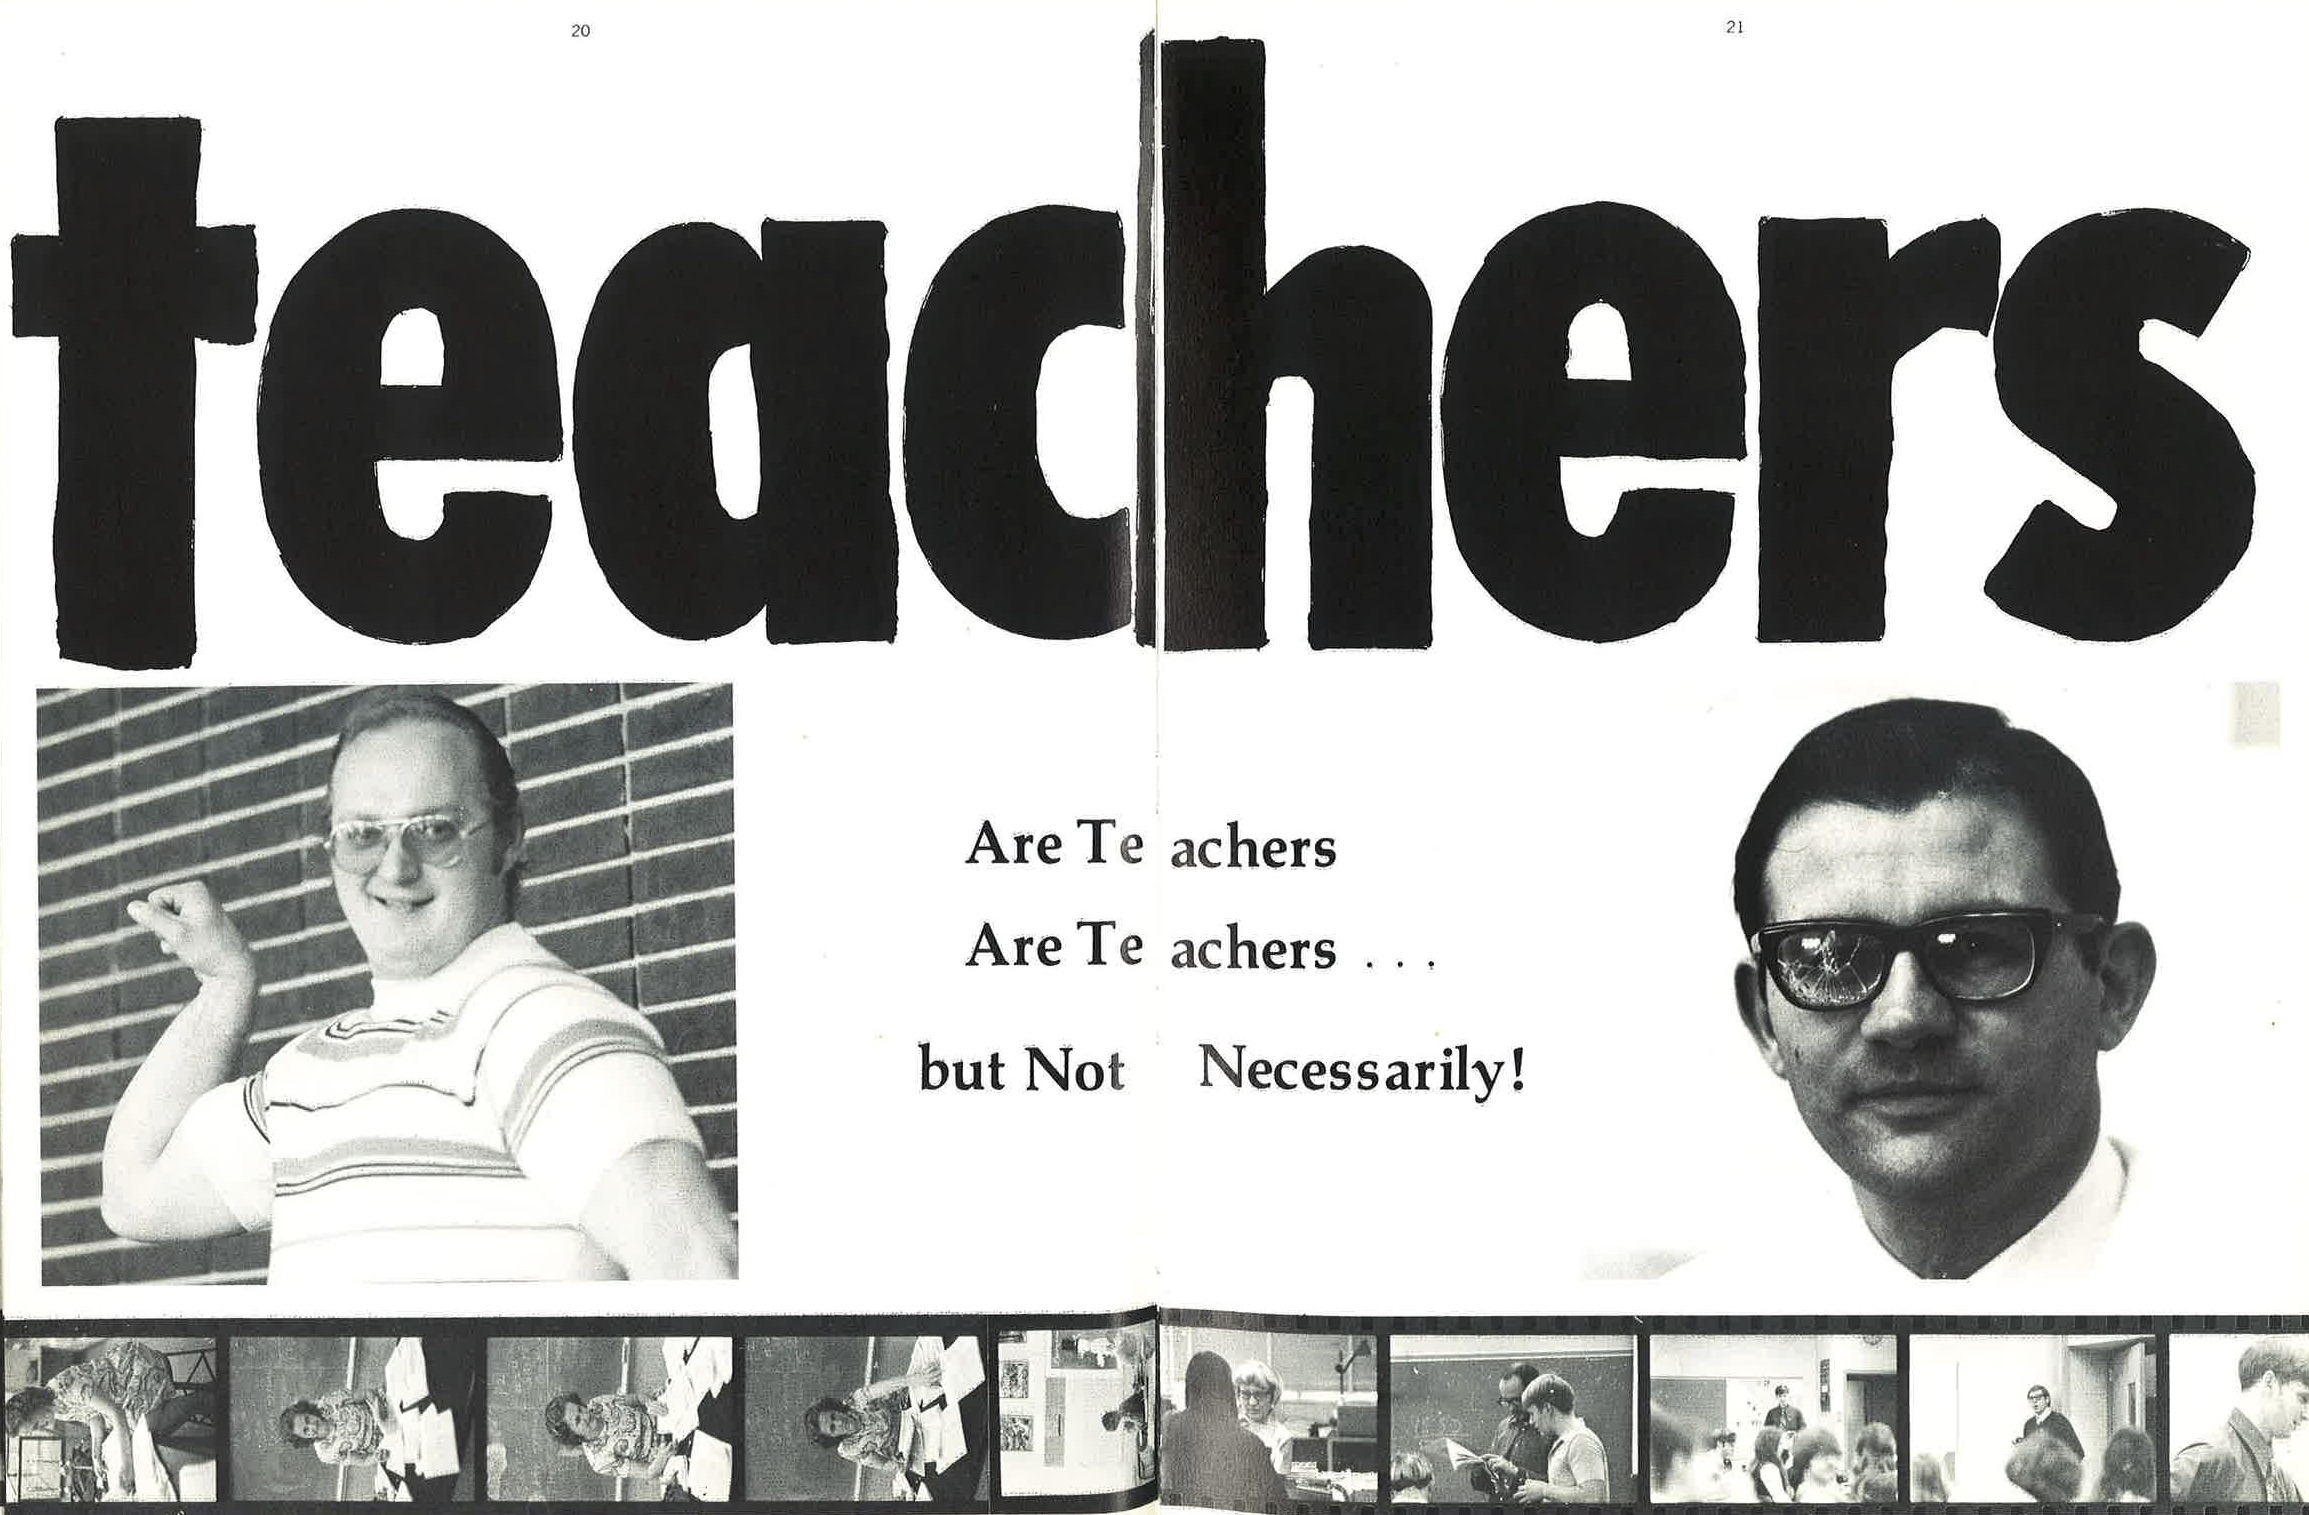 1972_Yearbook_20-21.jpg